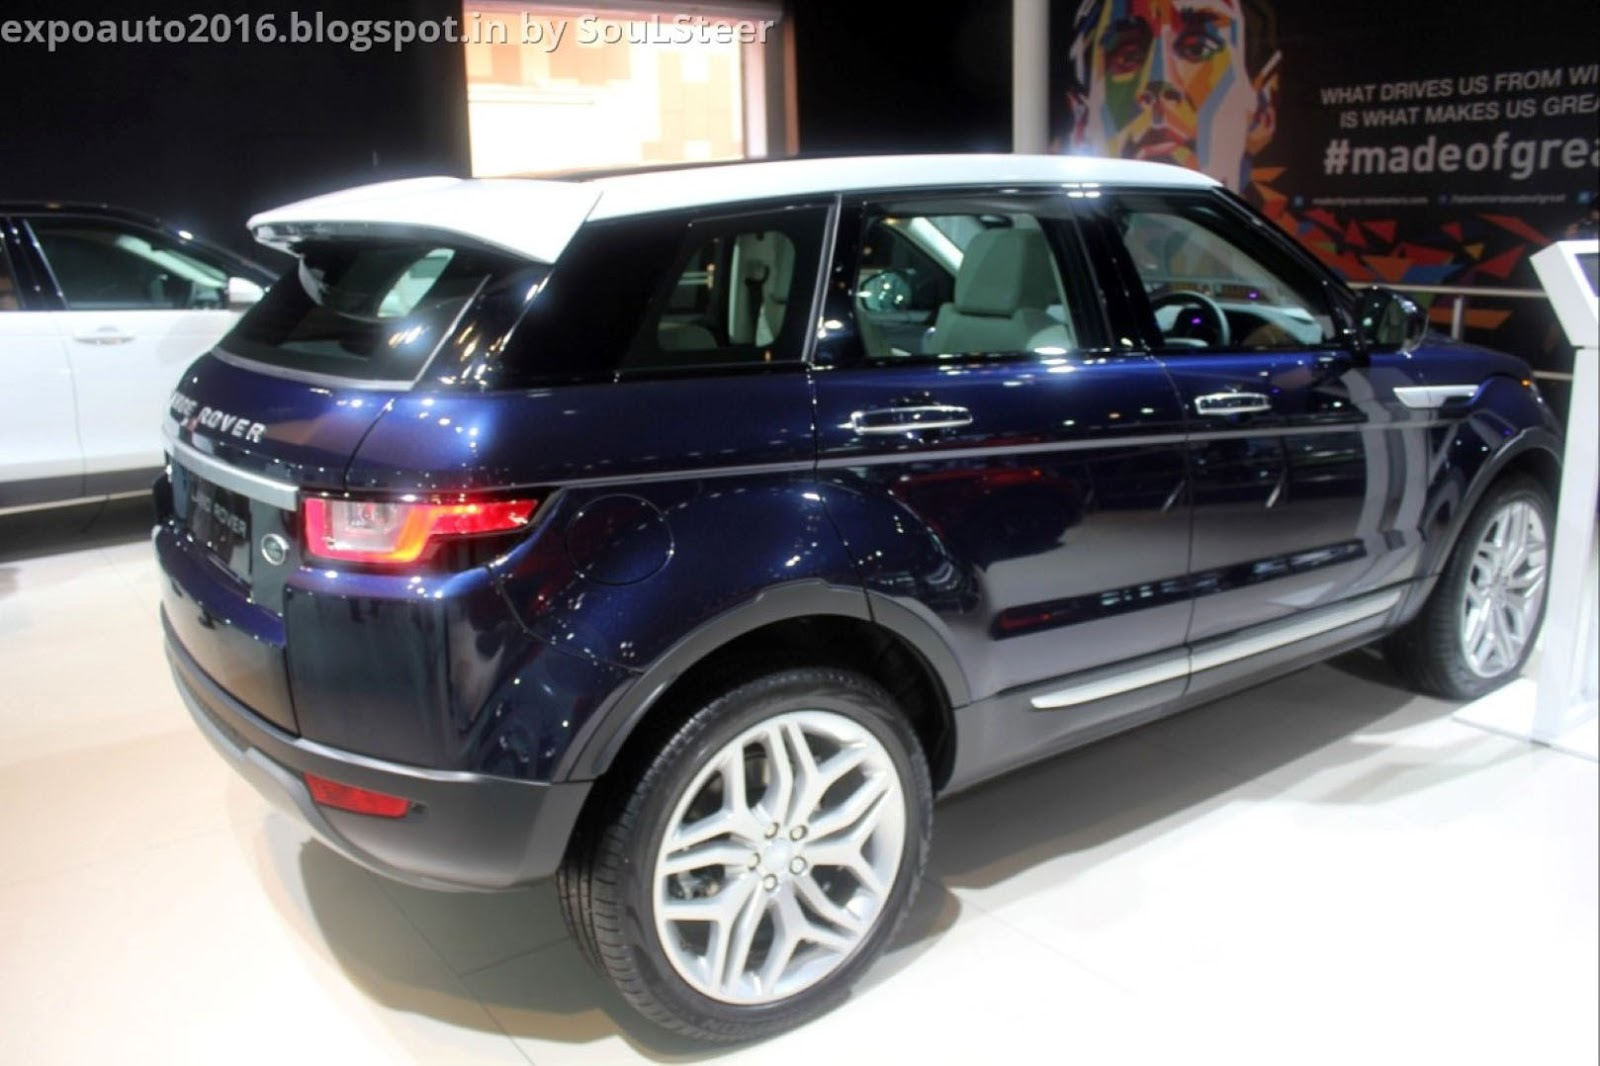 Auto Expo 2016 By Soulsteer Range Rover Evoque Compact Luxury Crossover Suv In Blue And Red